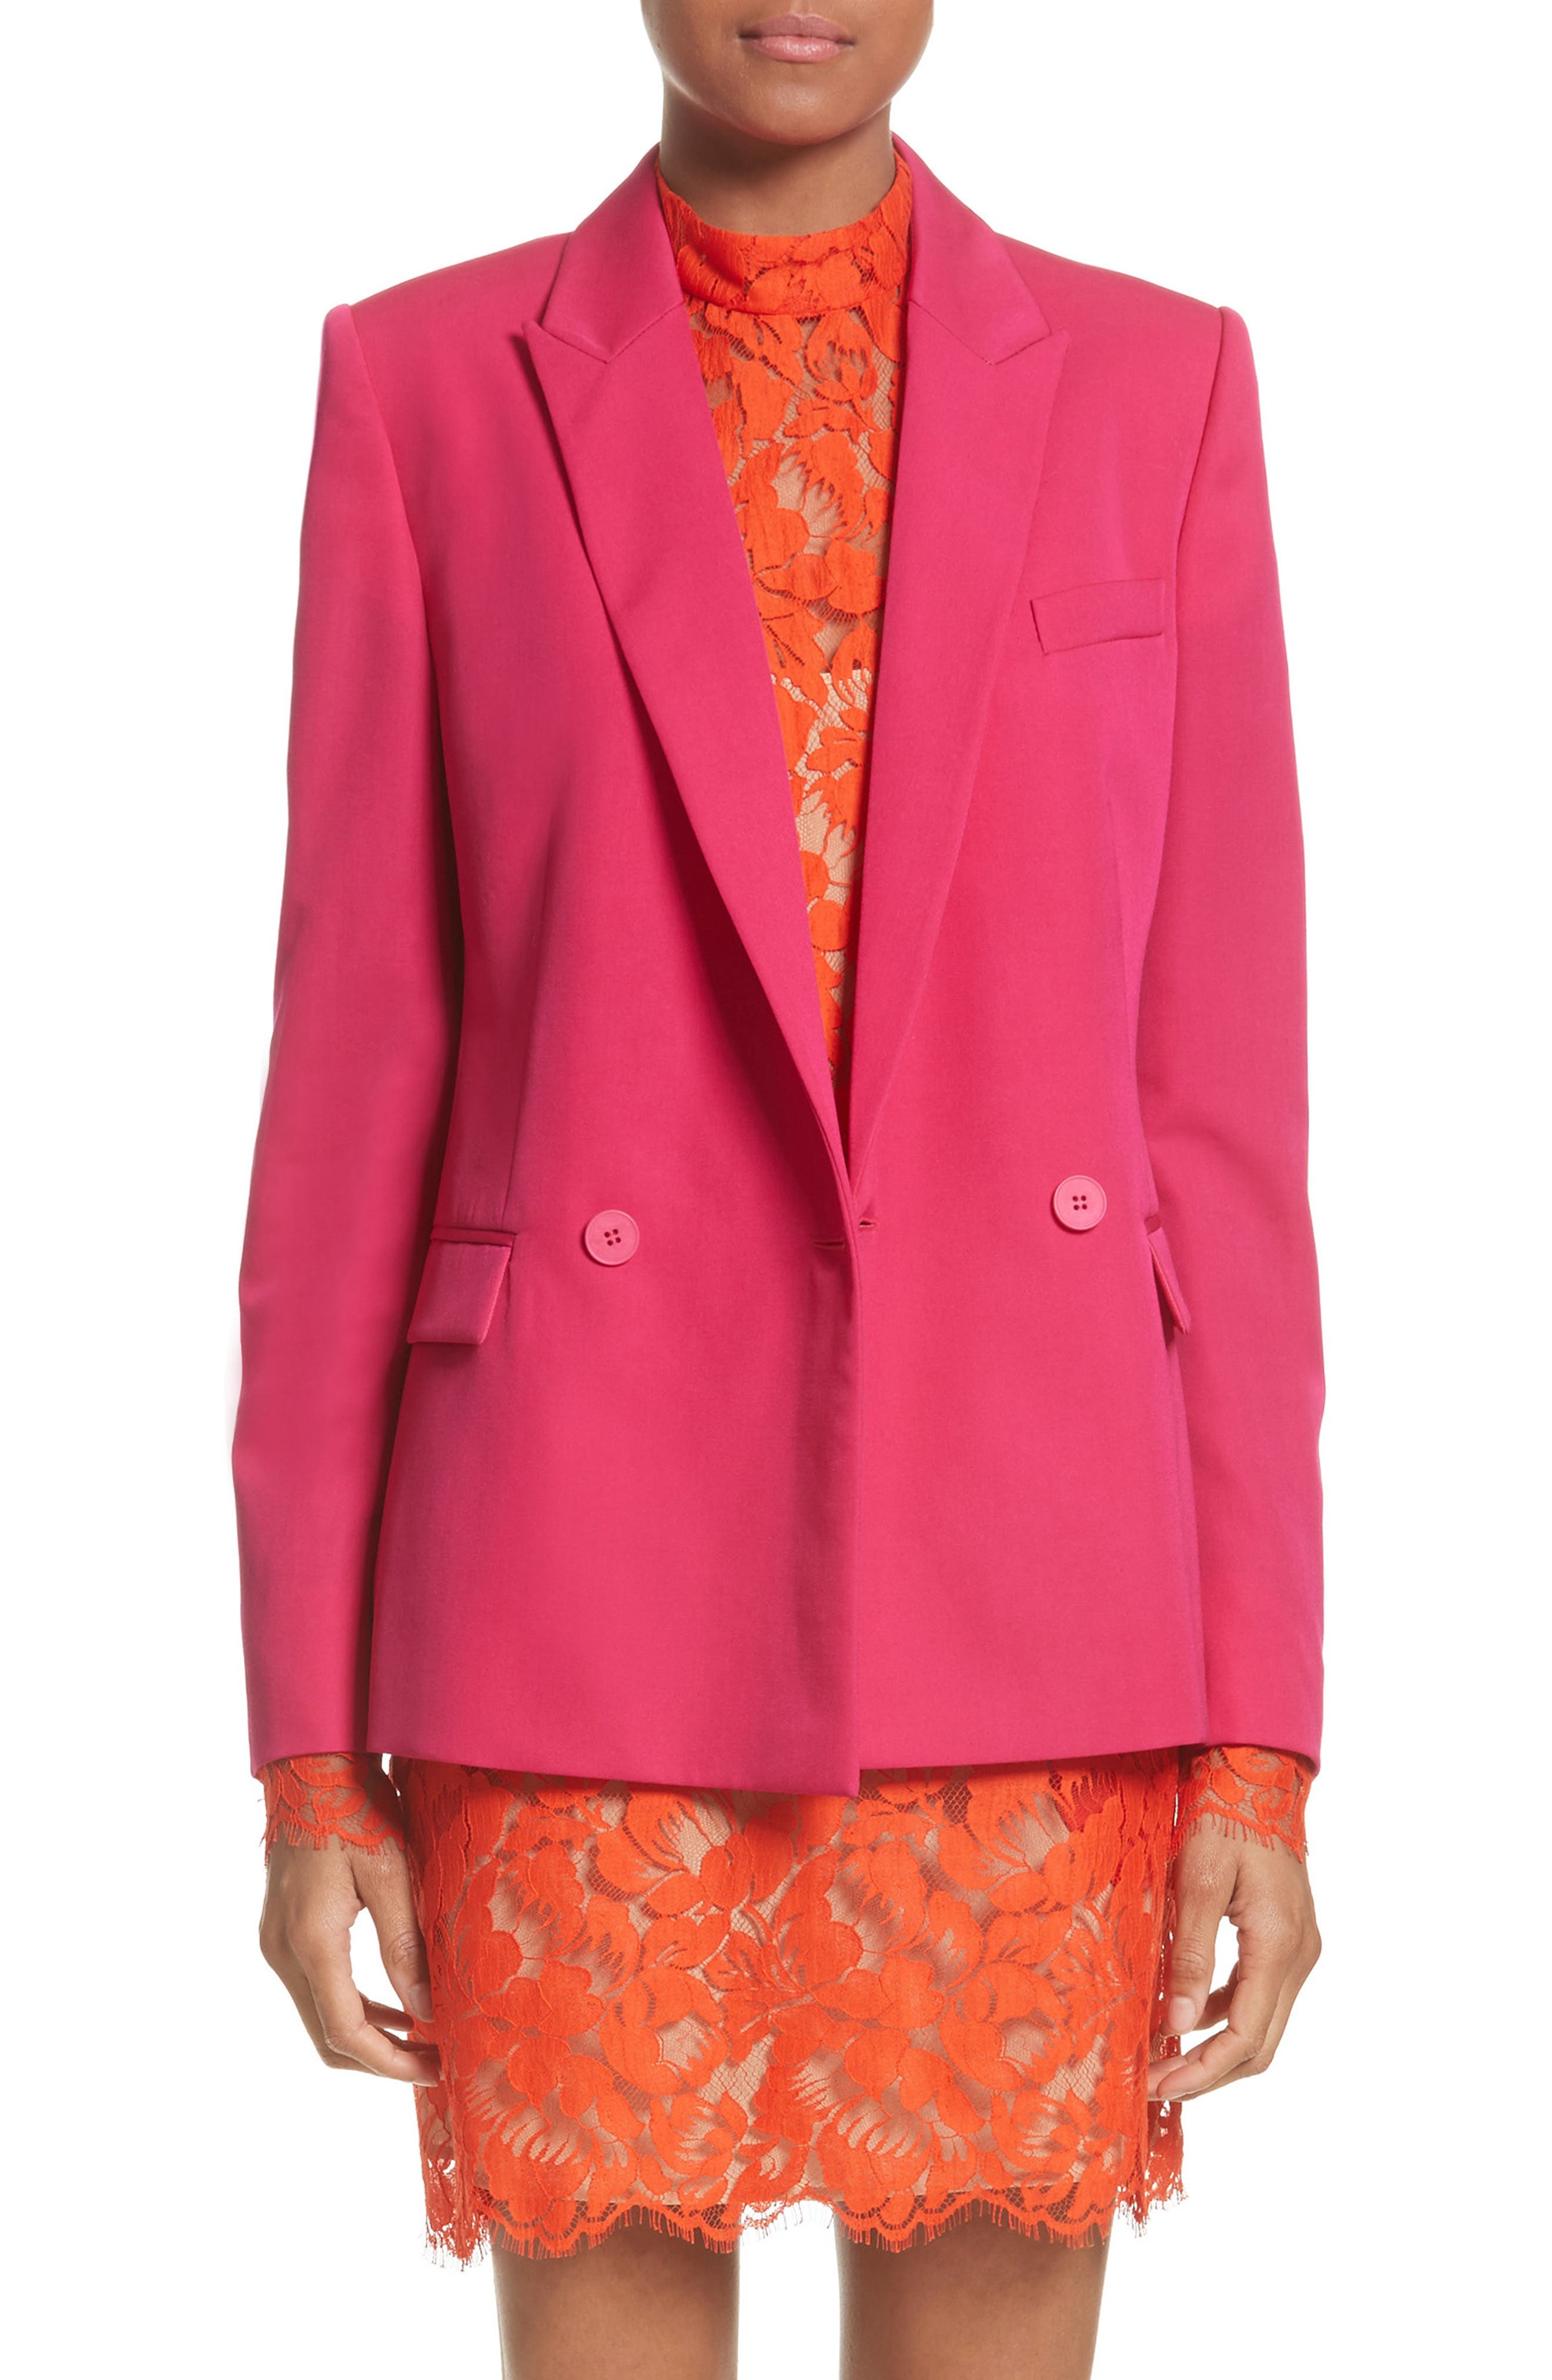 Stella McCartney Double Breasted Blazer